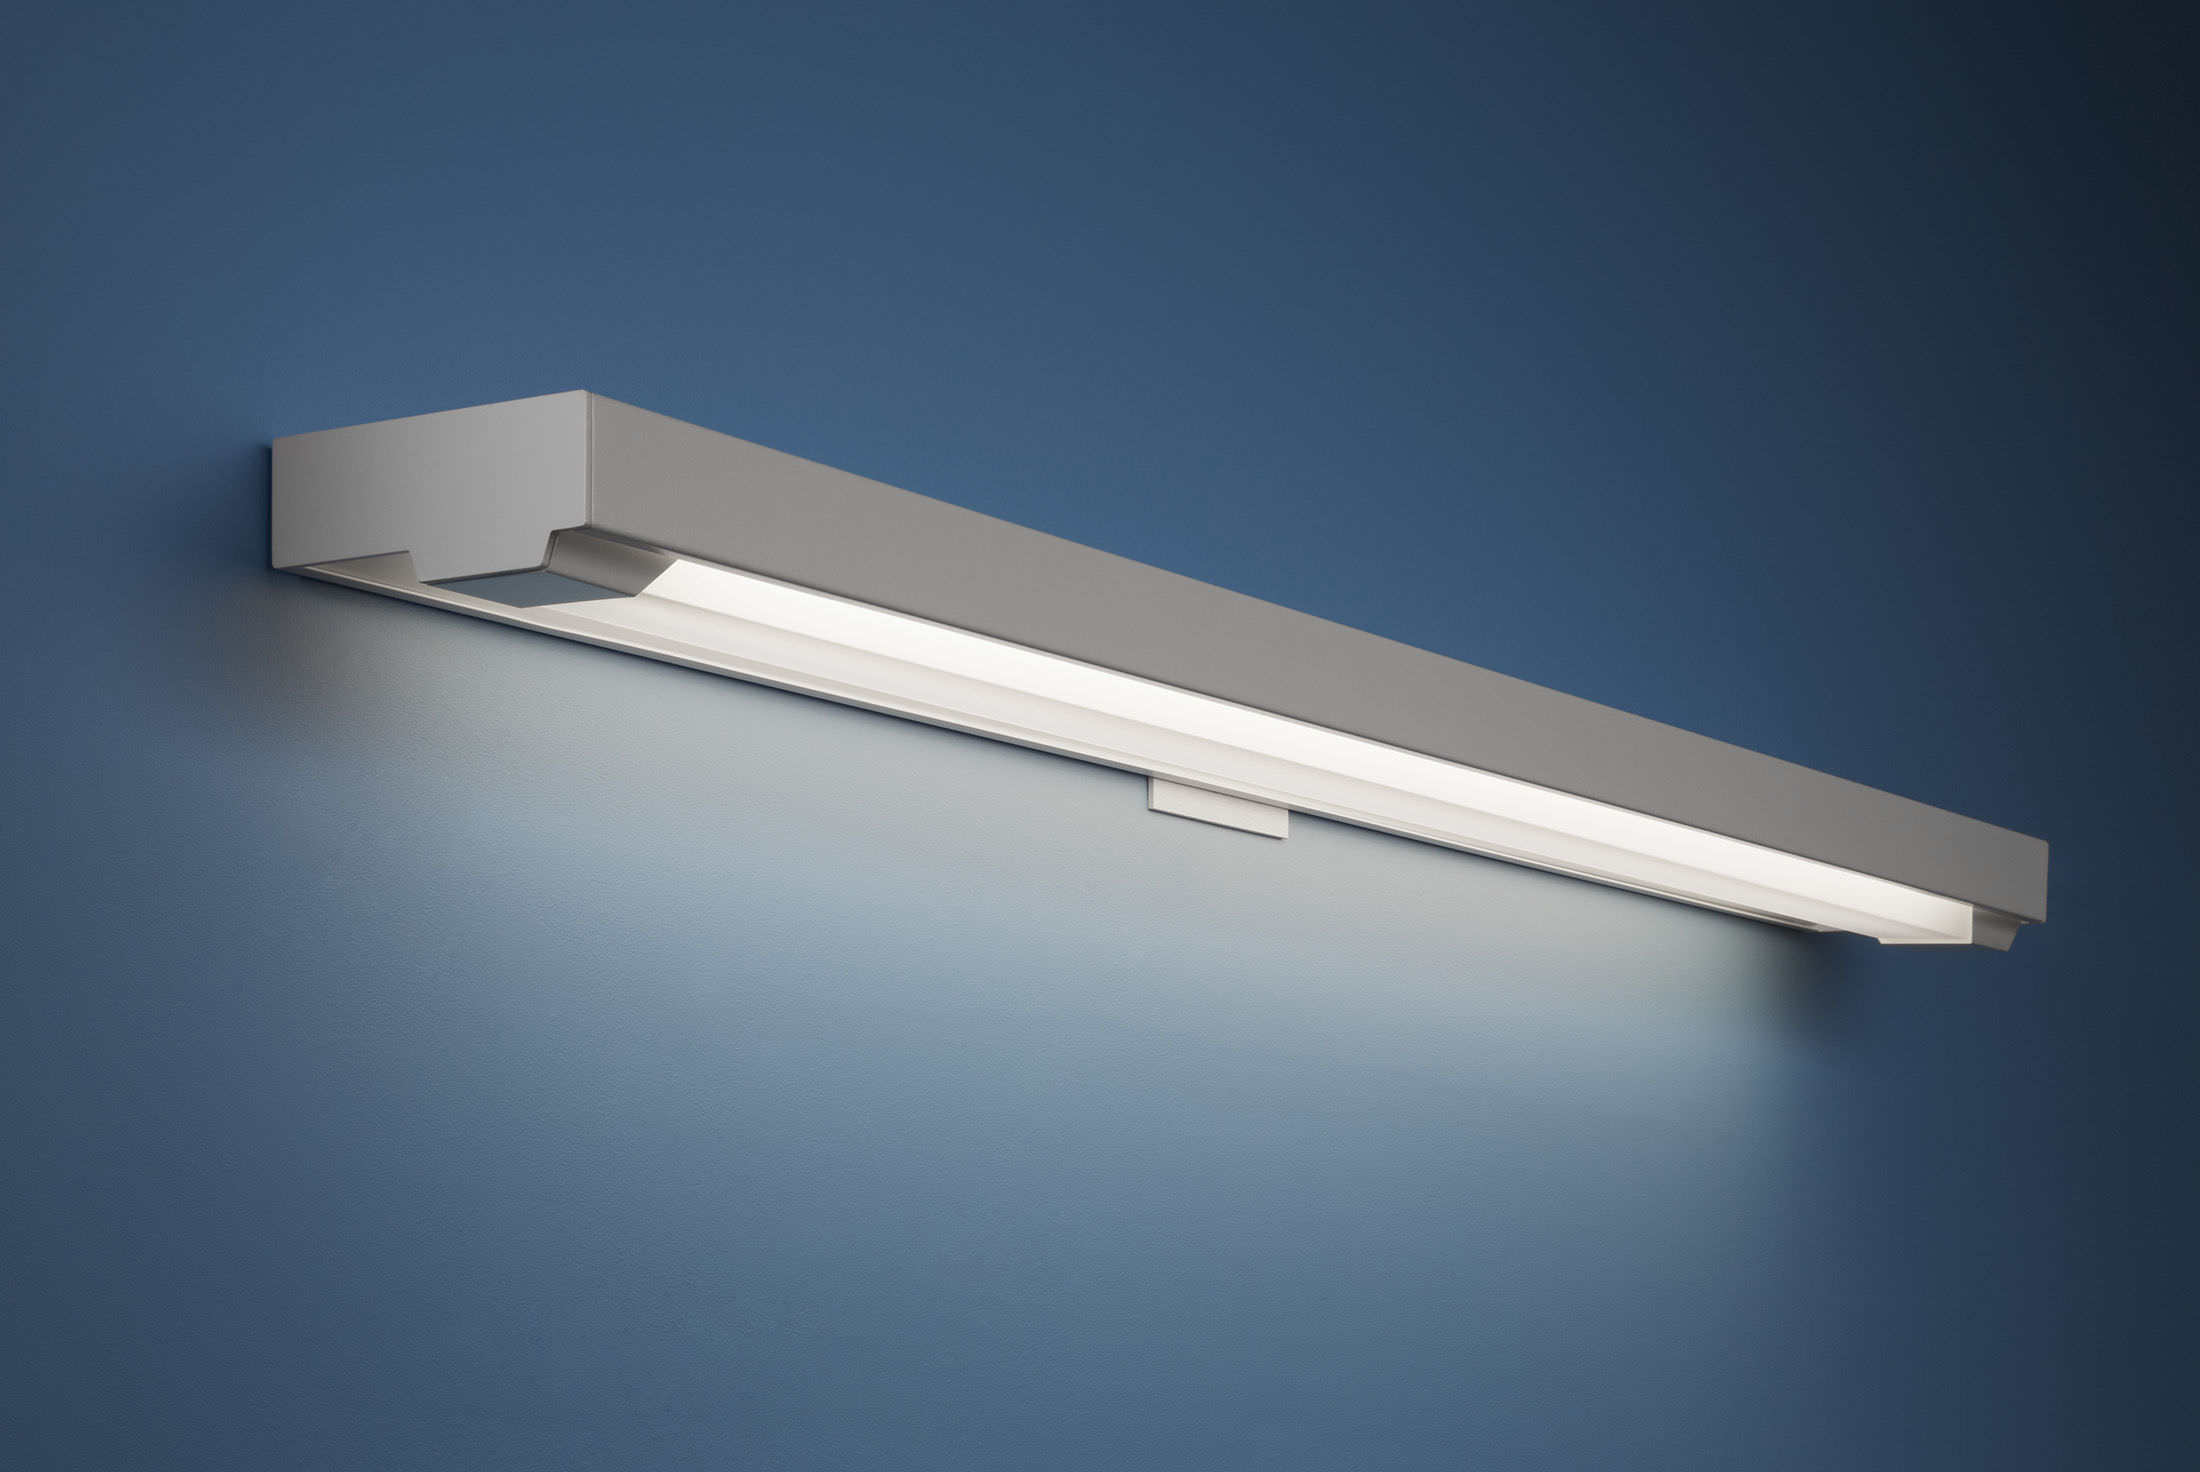 Surface Mounted Light Fixture Recessed Wall Fluorescent Linear Aerial